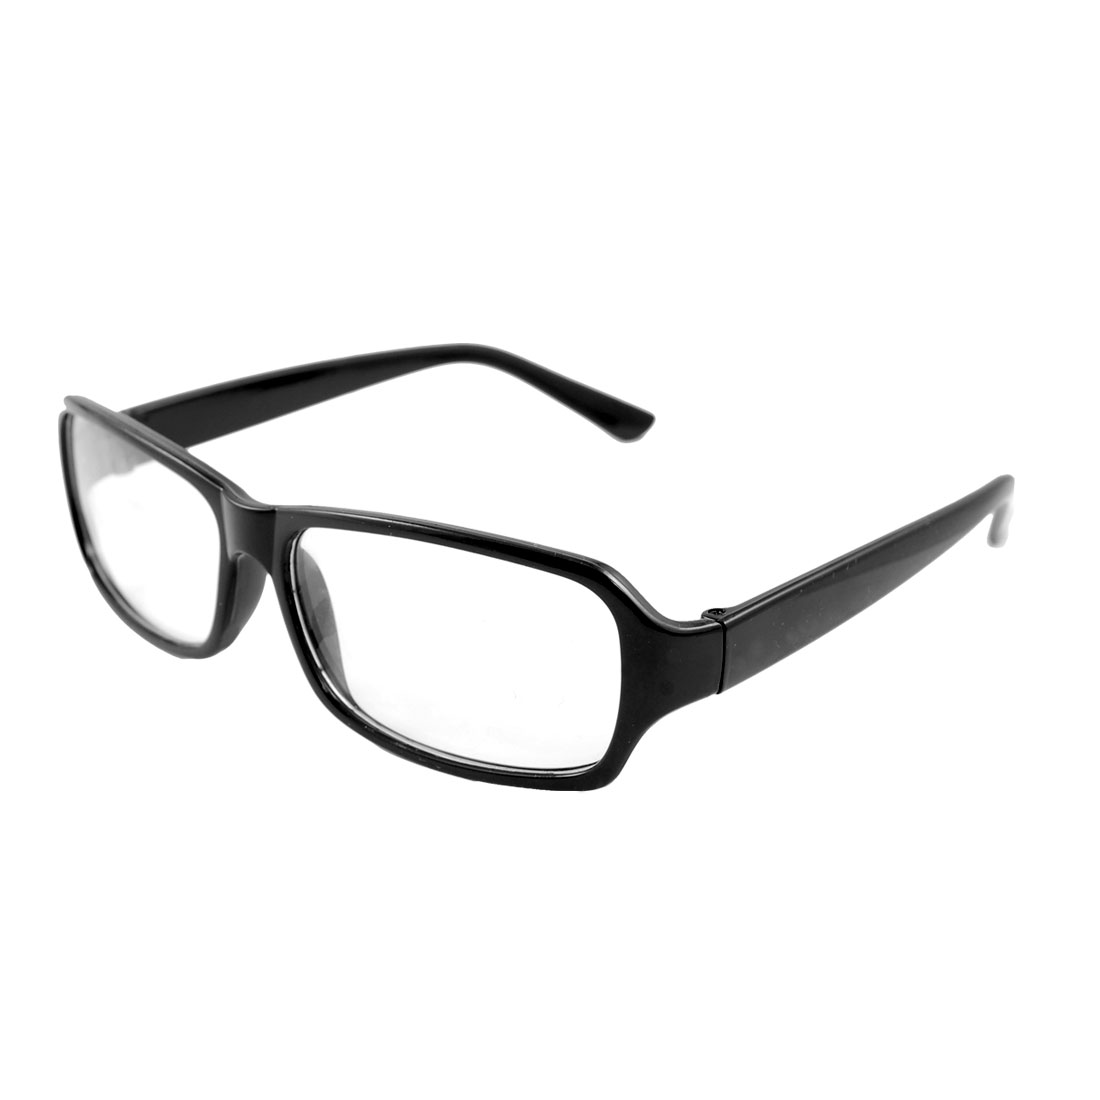 Plastic Full Frame Arms Rectangle Lens Black Plain Eyeglasses for Women